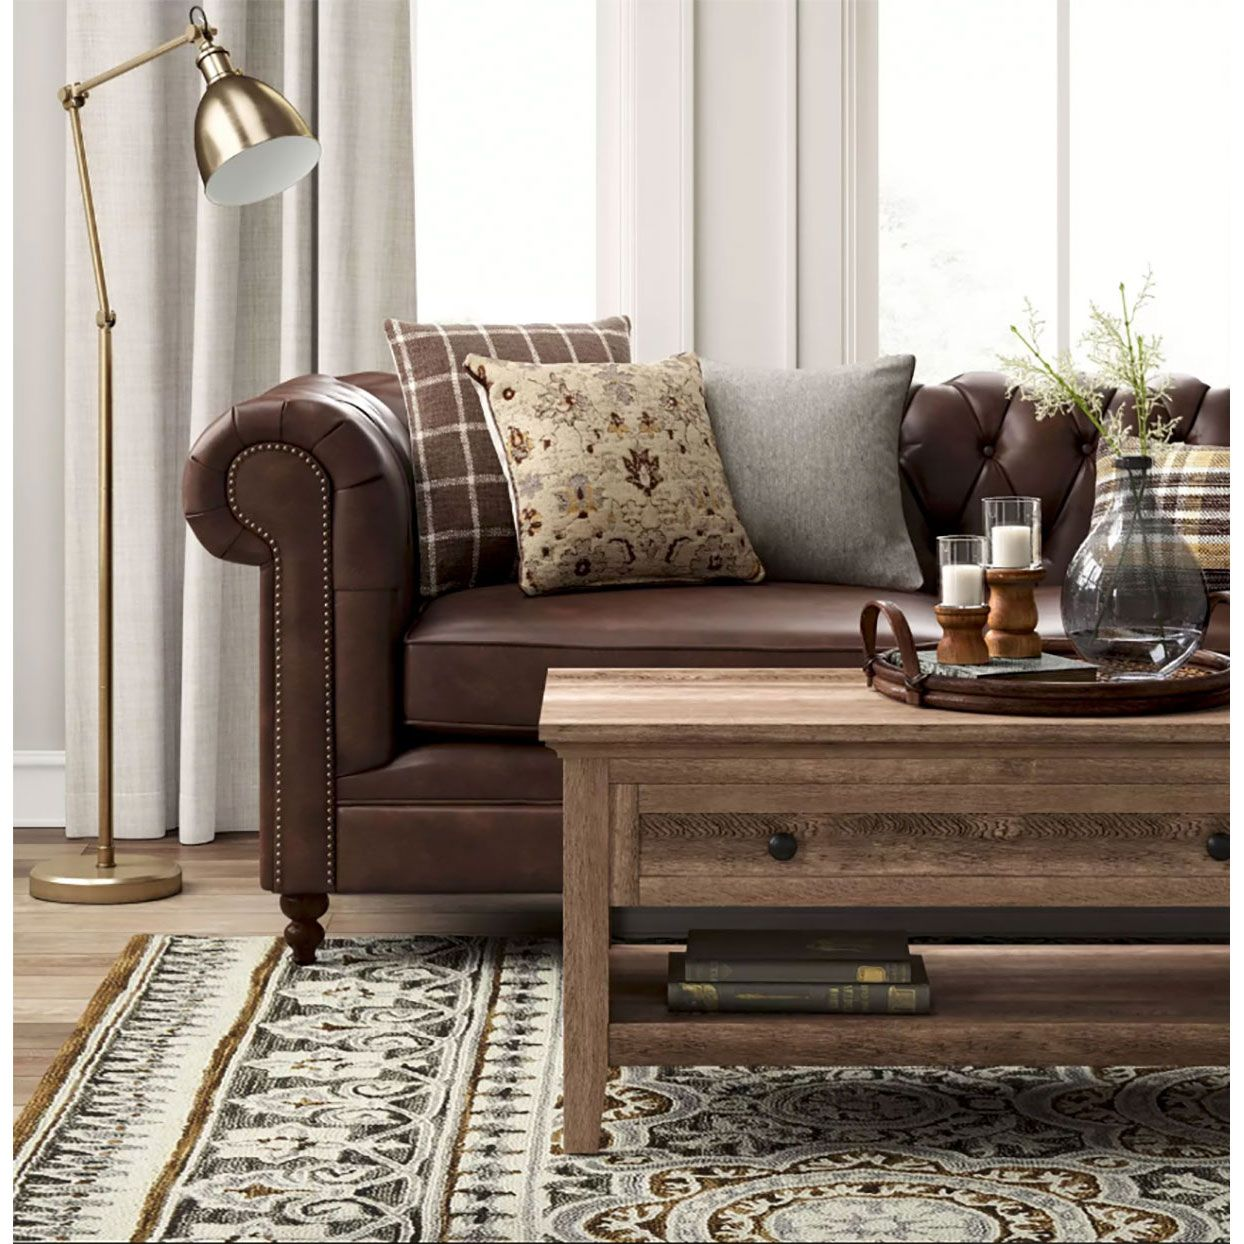 Best 9 Brown Sofas You Can Shop For Less Than 700 With Images 400 x 300